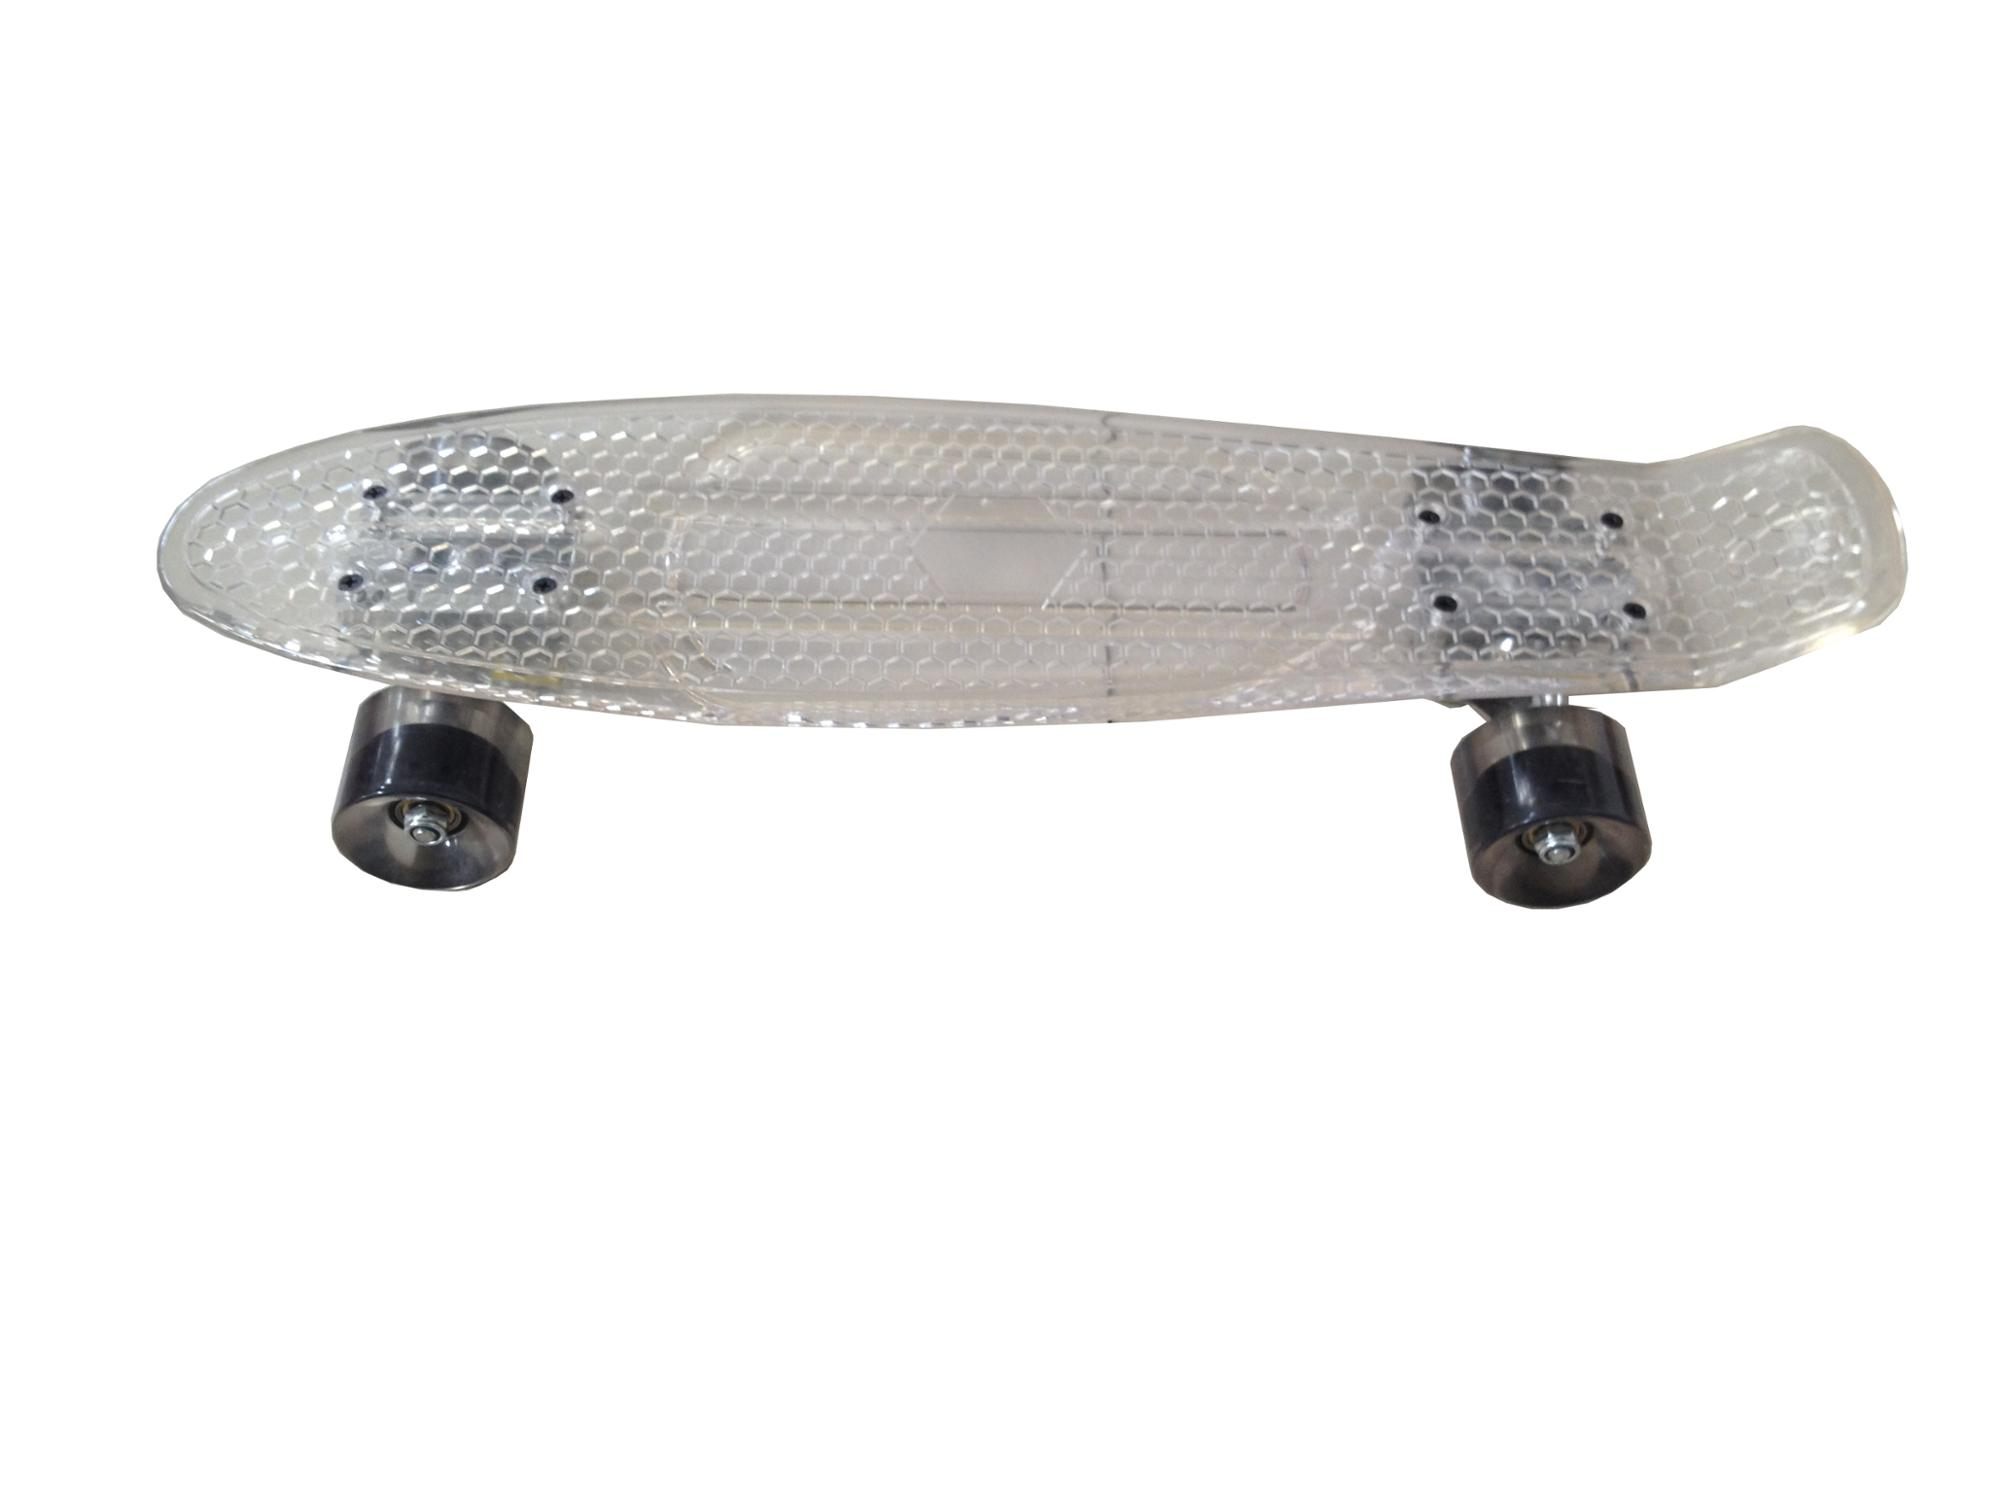 Wholesale cruiser skateboard custom cruiser skate board super cruiser